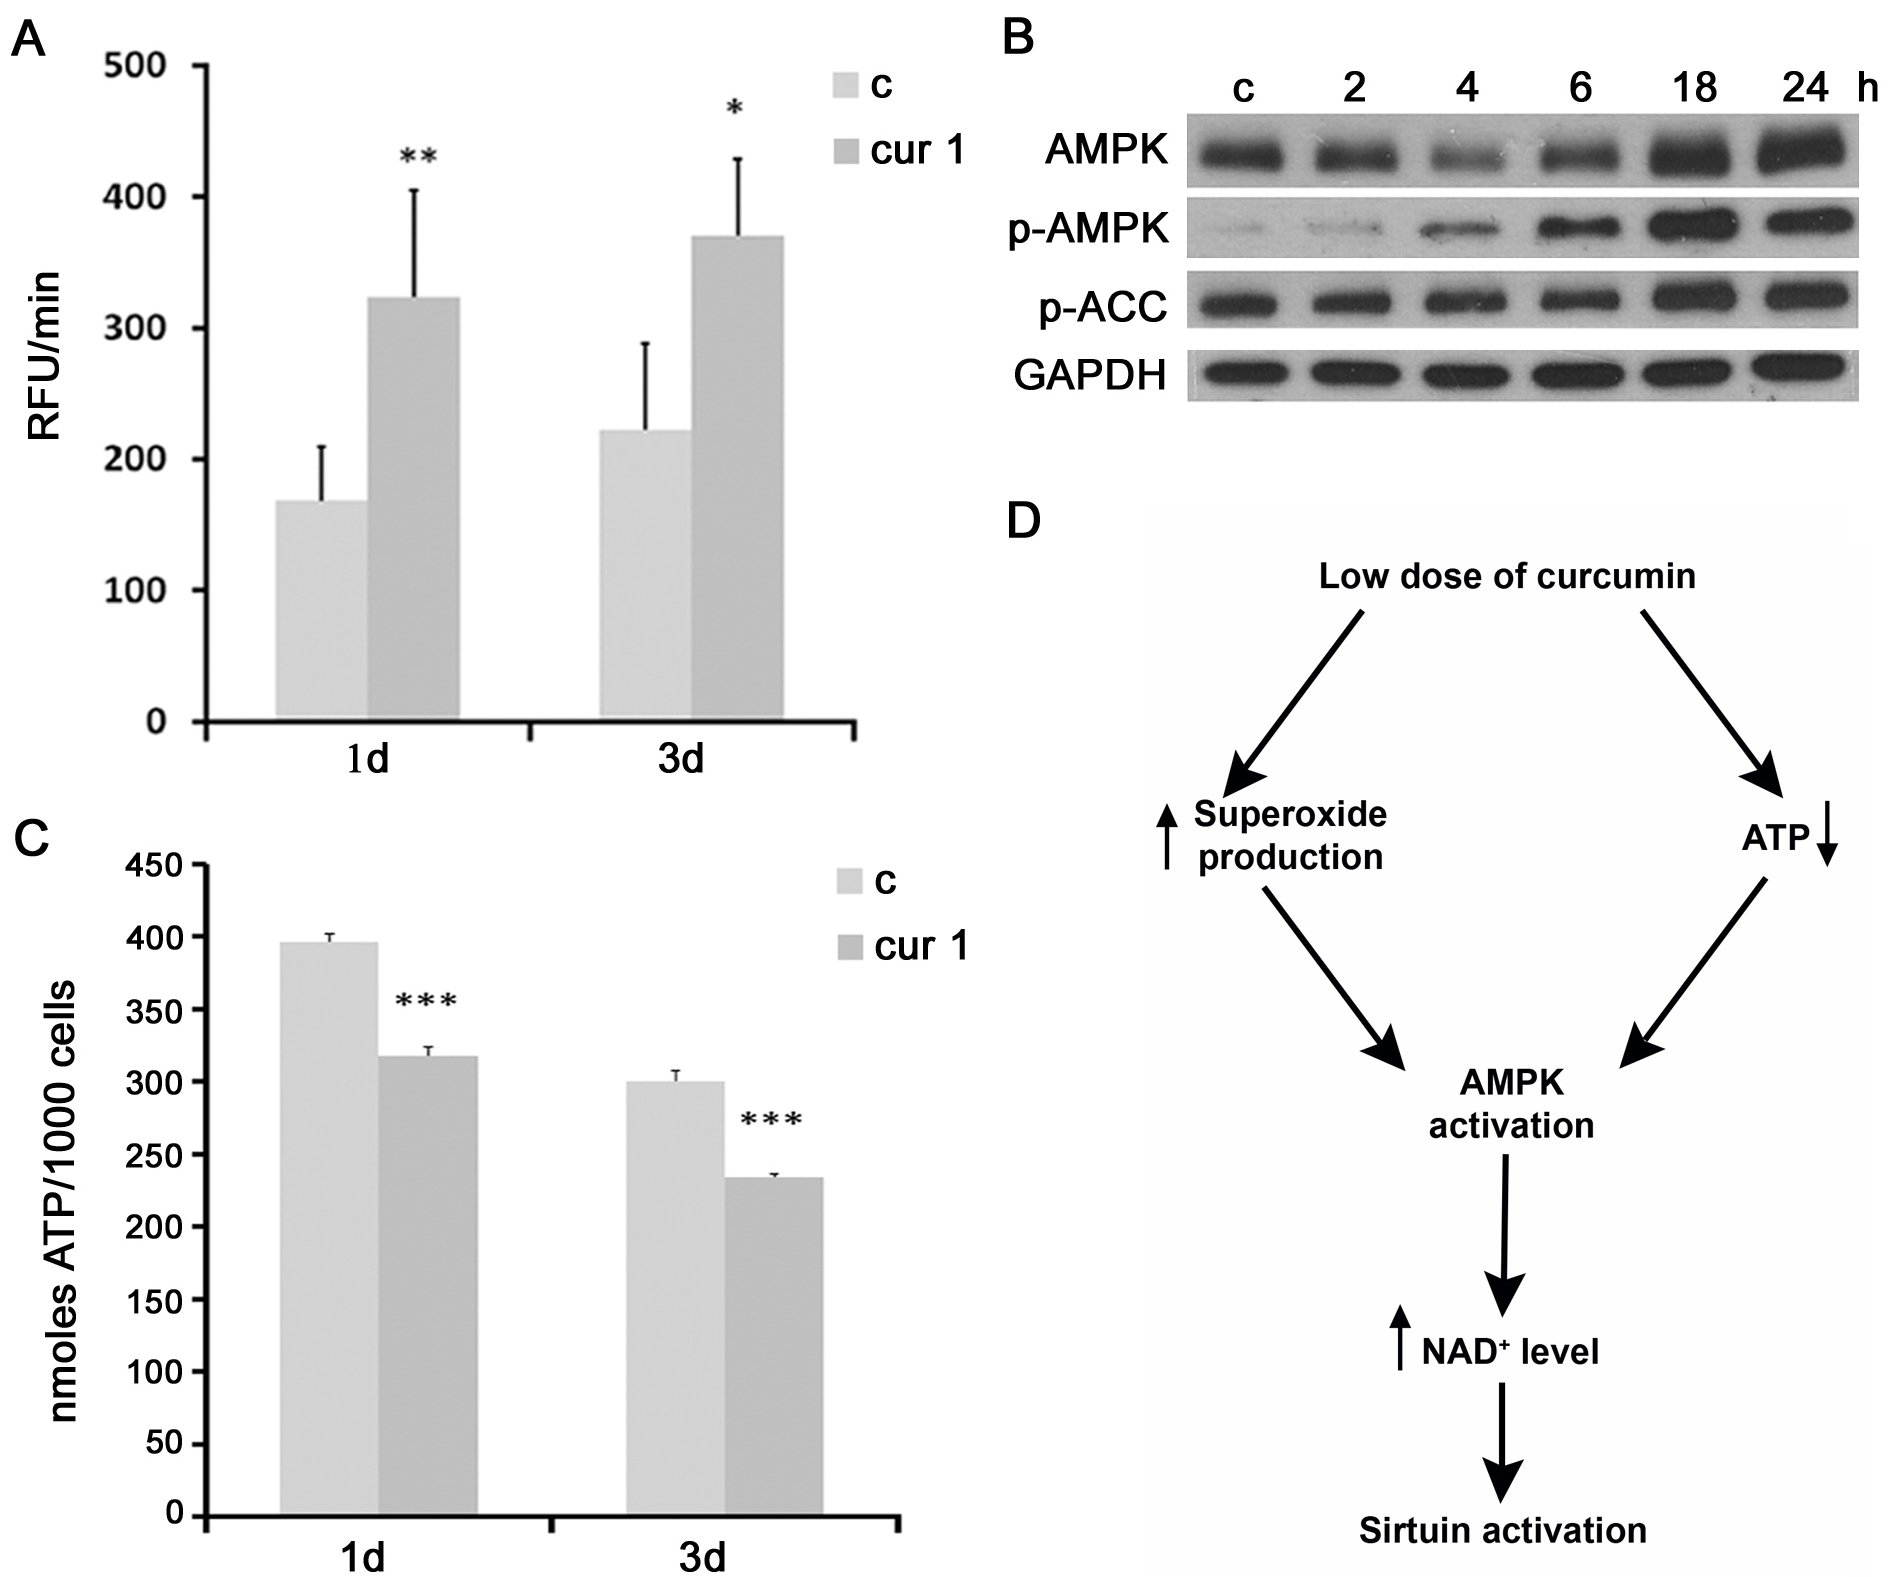 The impact of curcumin on superoxide production, AMPK activity and ATP level.